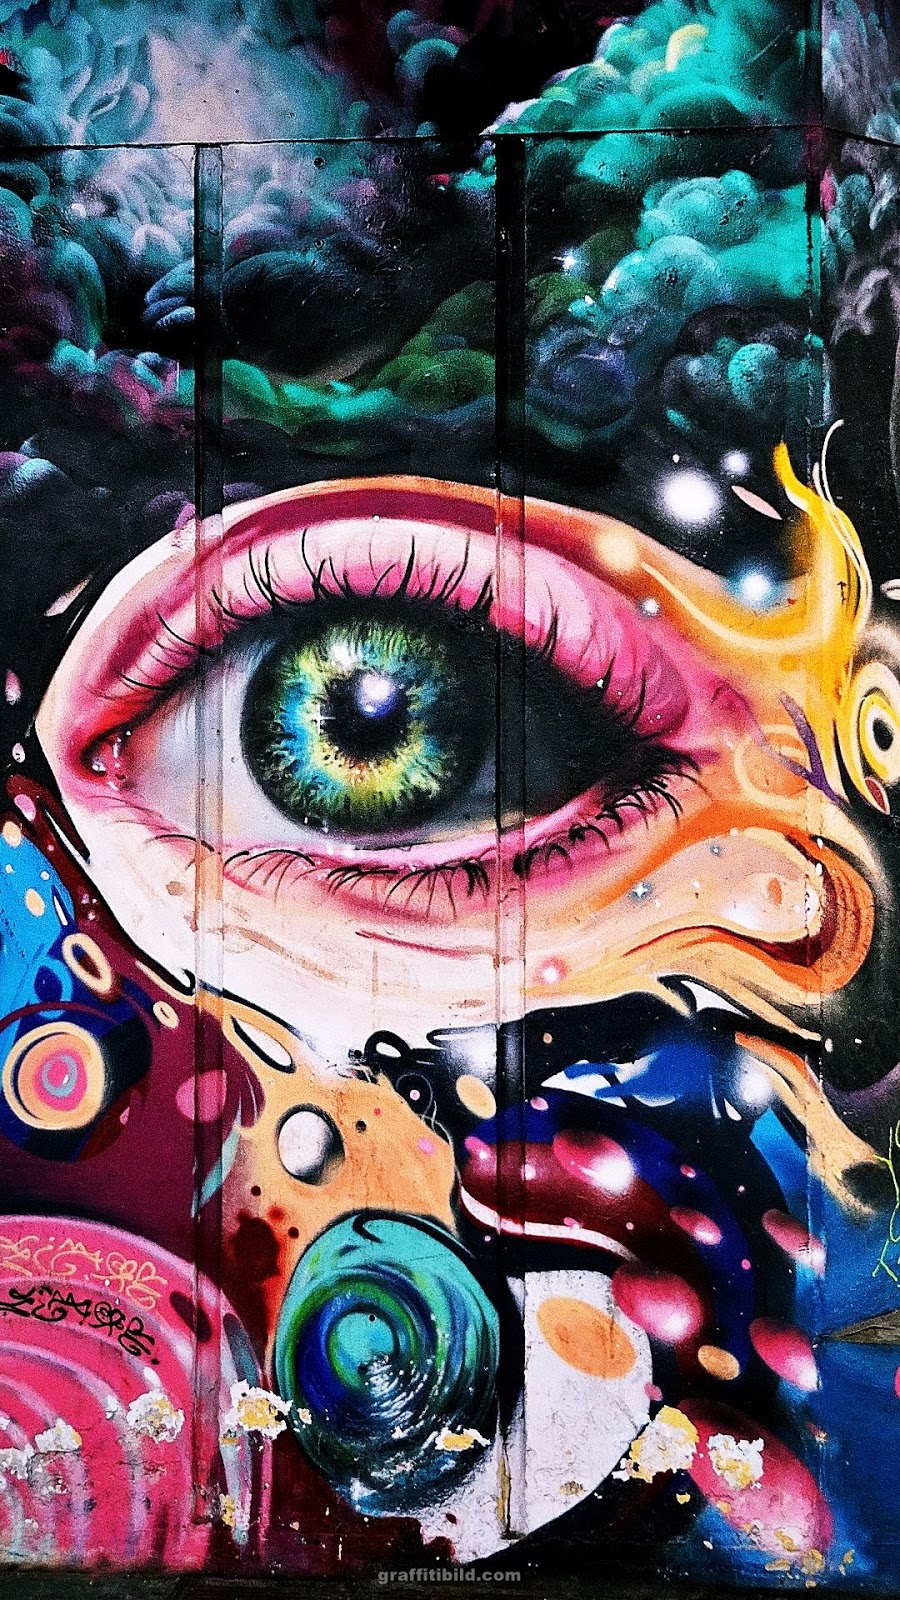 wallpapers hd, graffiti wallpapers for mobile, android, iphone